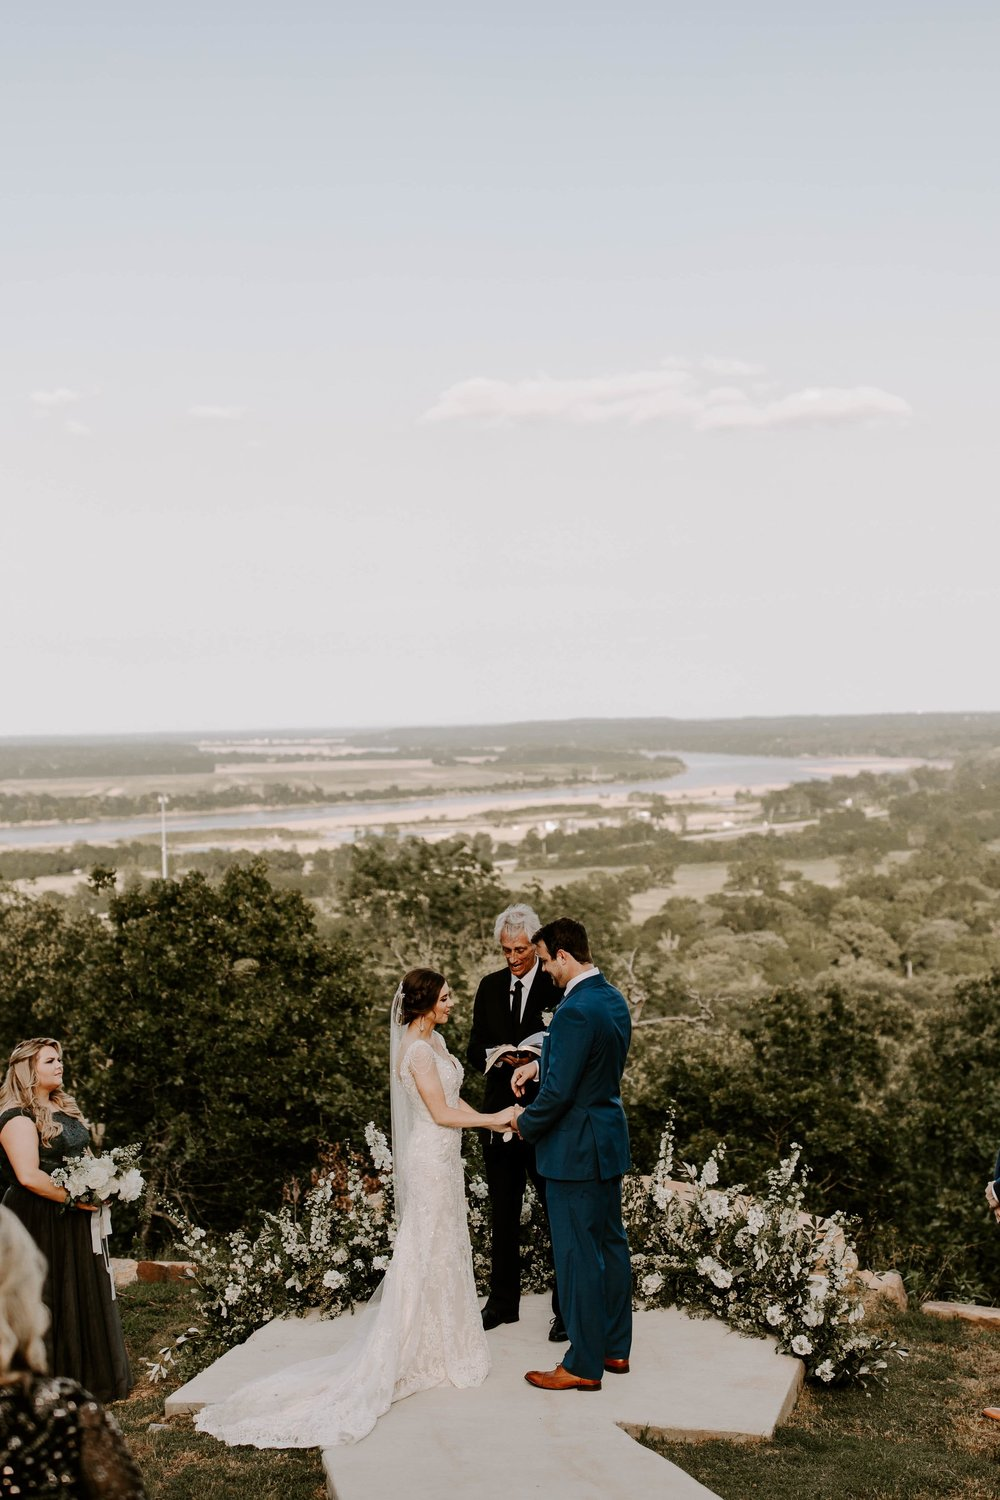 outdoor wedding venue largest tulsa-min.jpg